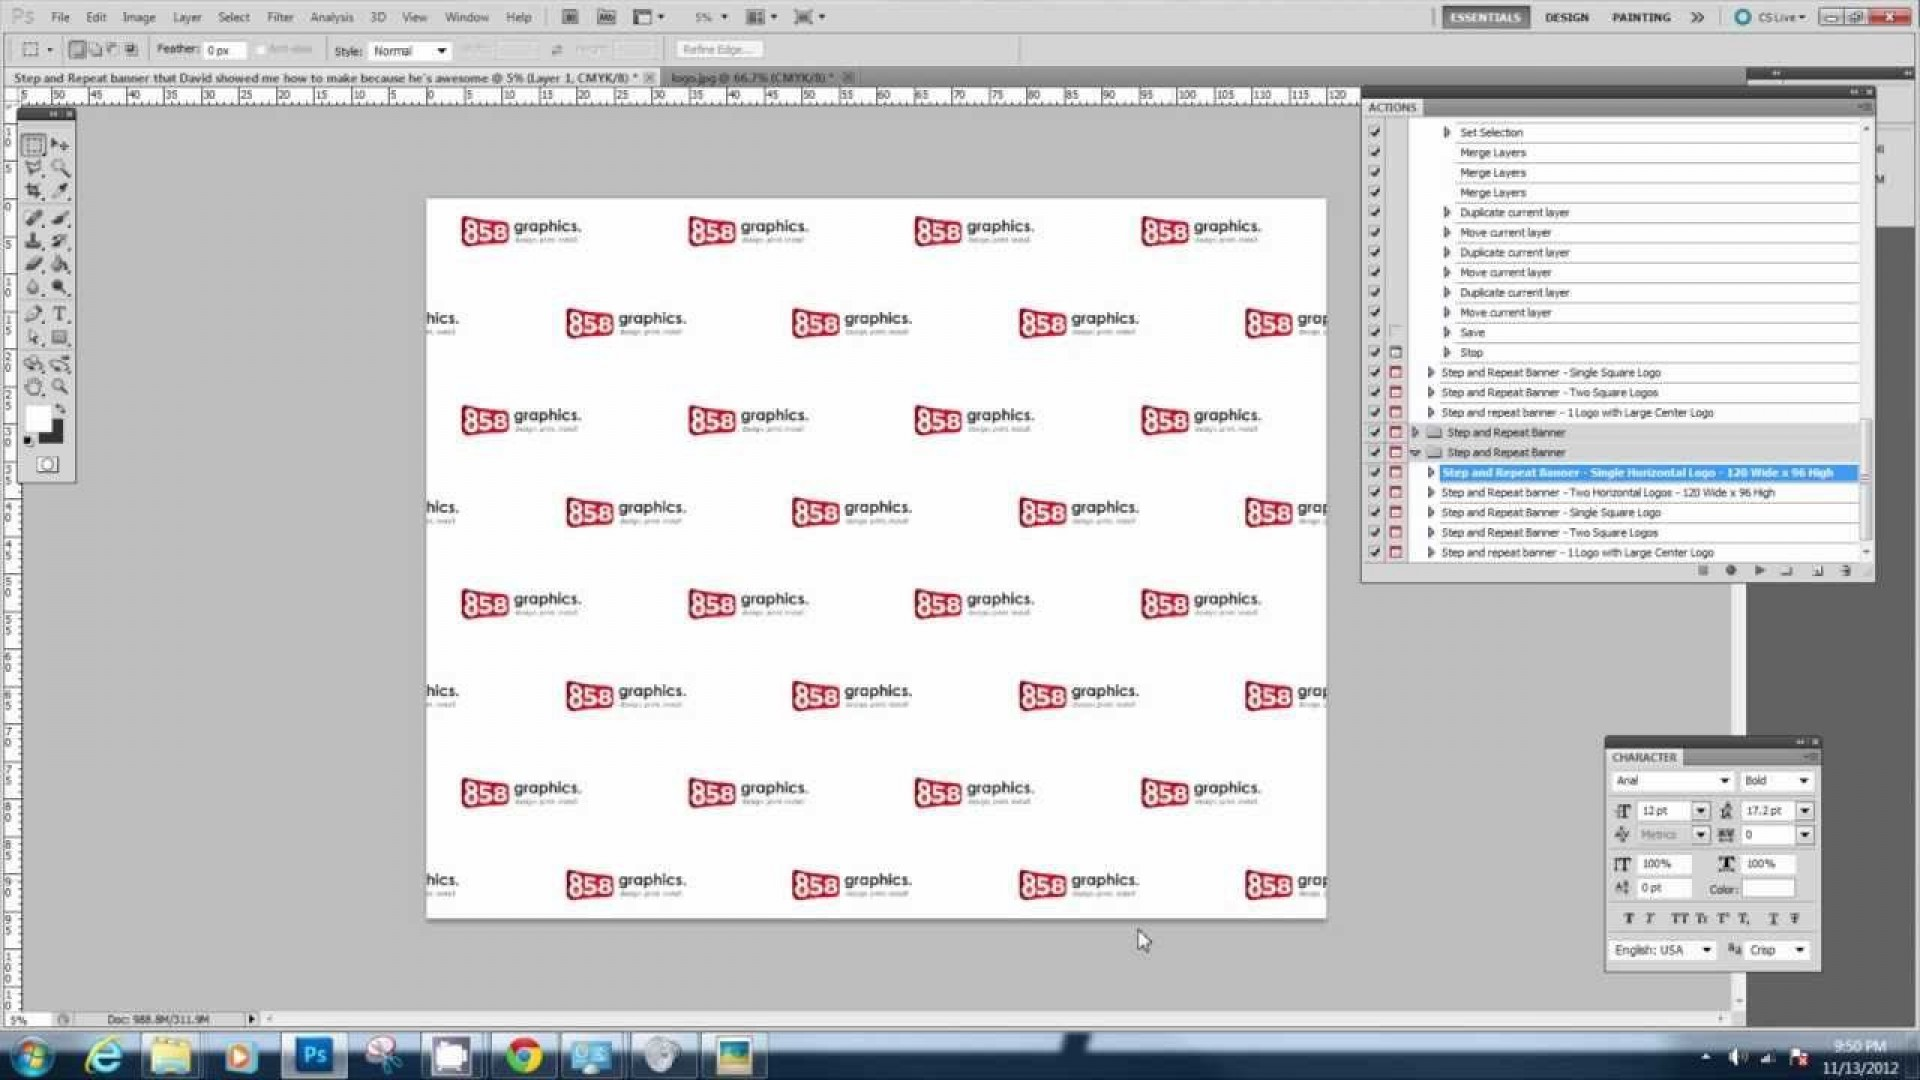 005 Best Step And Repeat Banner Template Inspiration  Psd Photoshop 8x81920